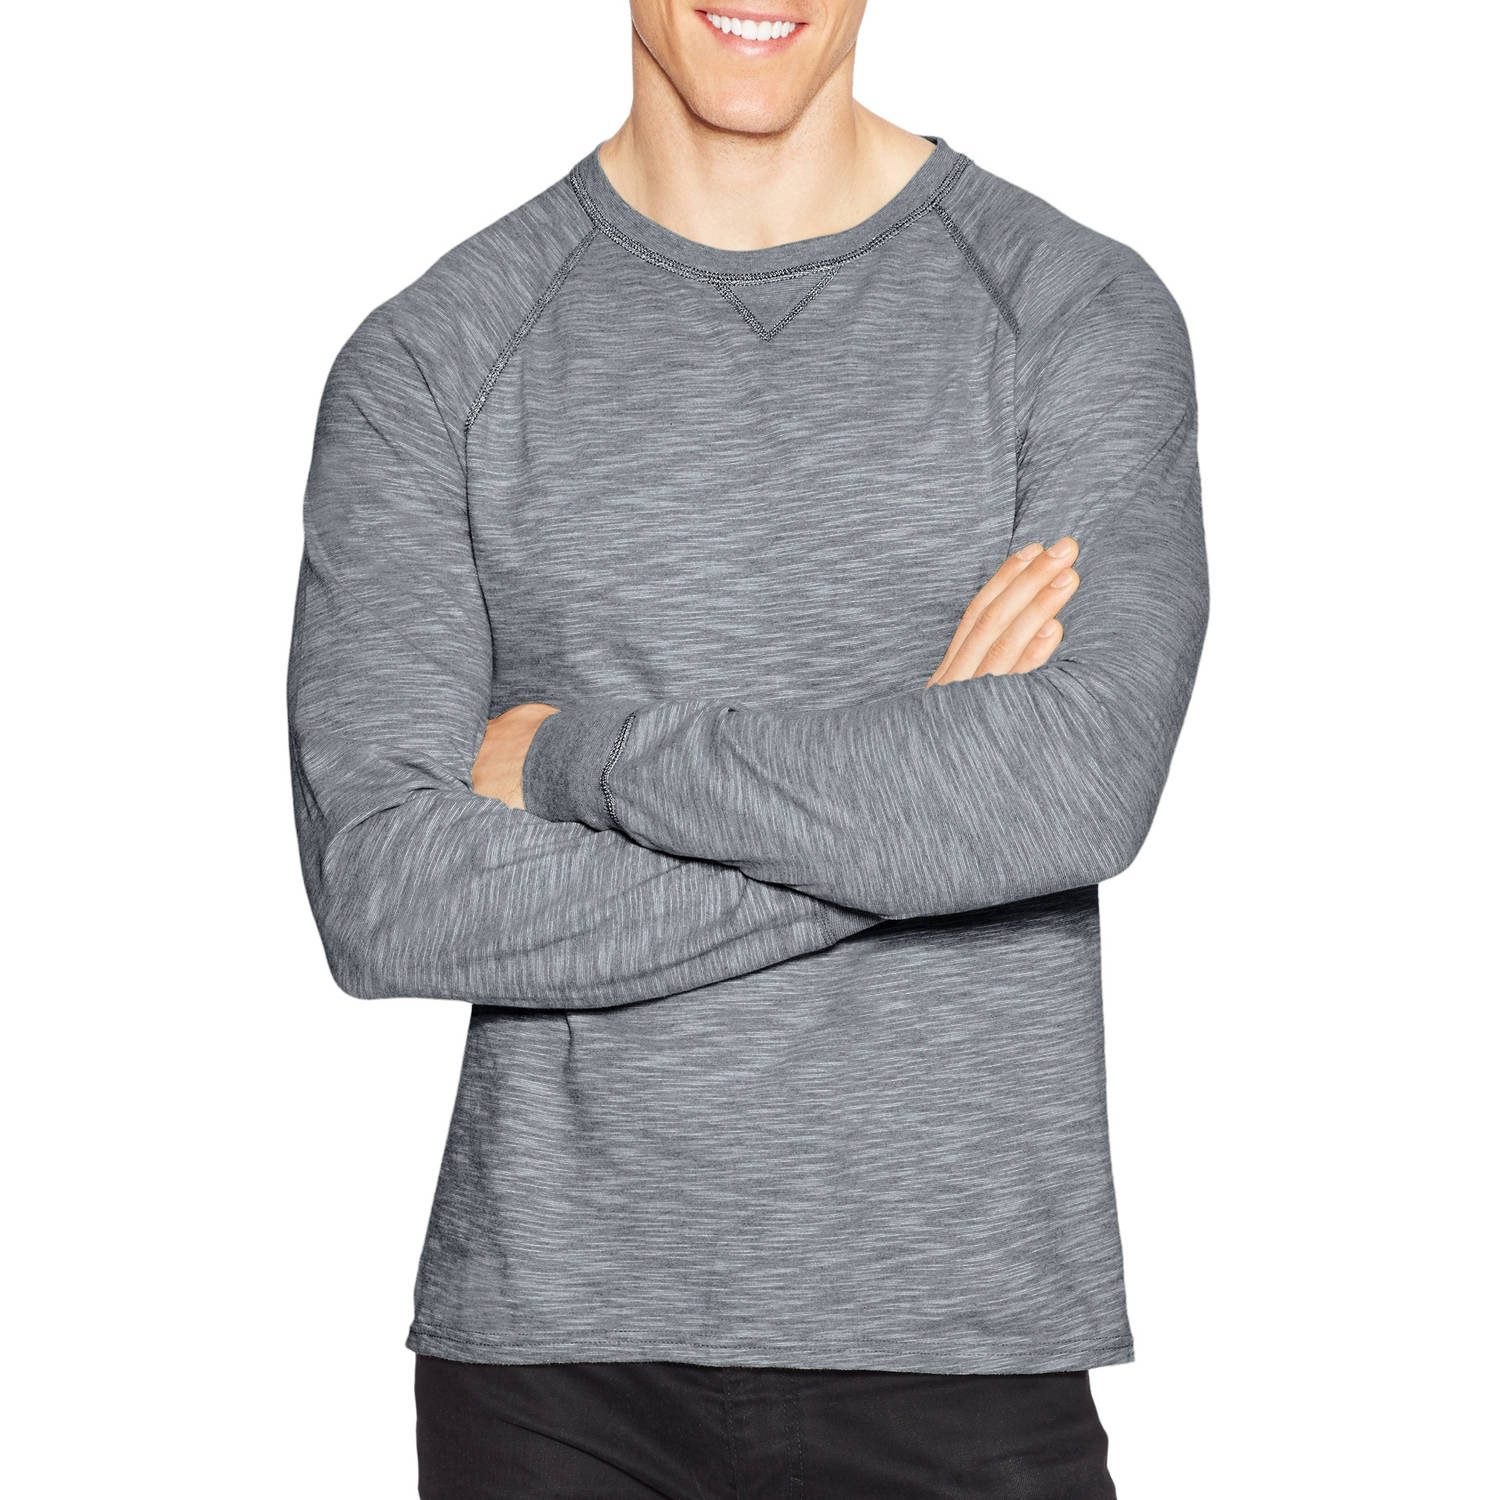 Hanes Big Men's Long Sleeve Slub Jersey T-shirt